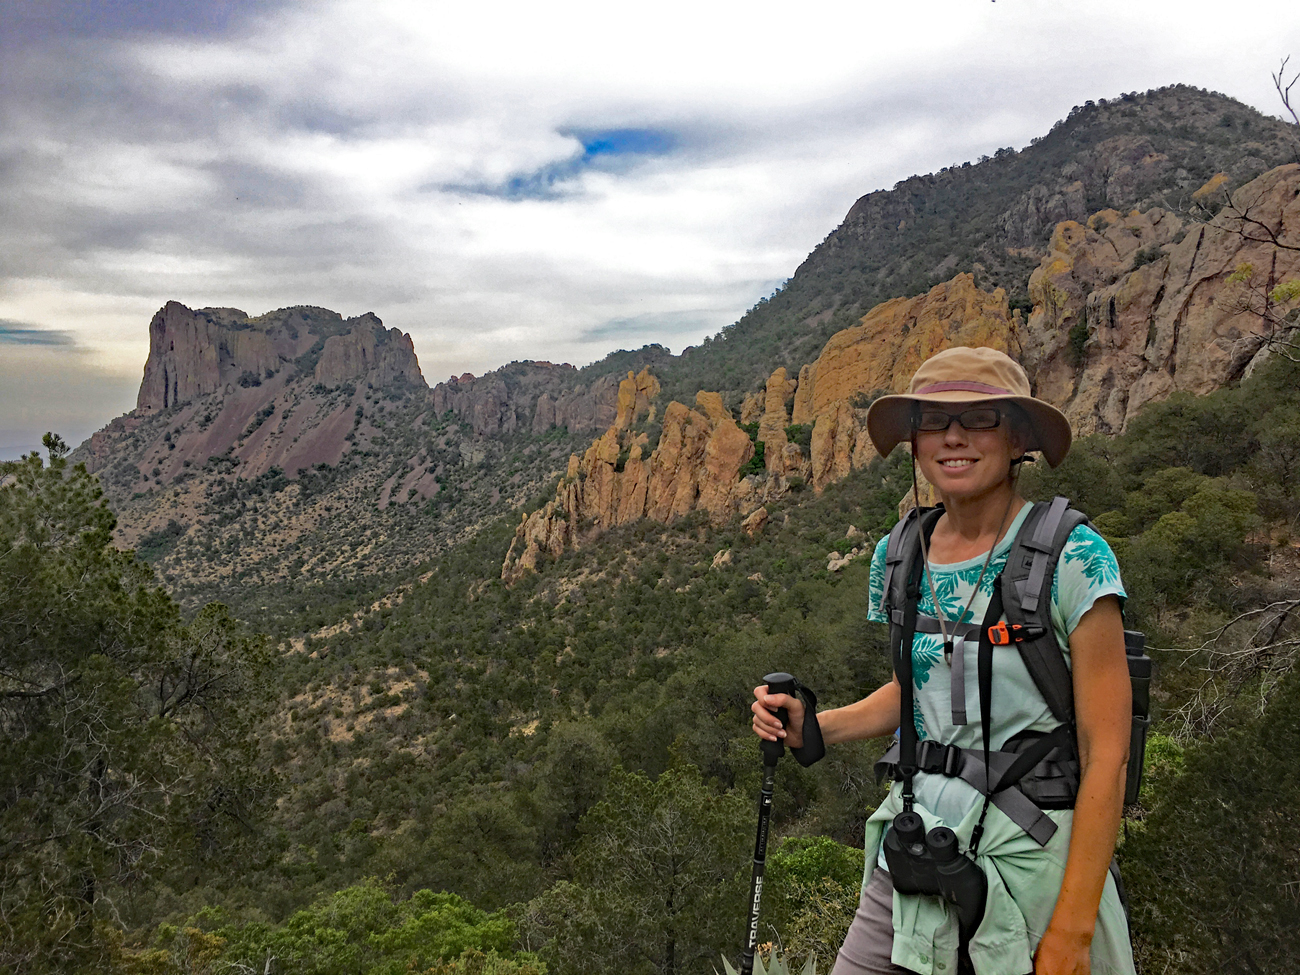 Christina and the view from the top of the Pinnacles Trail switchbacks in Big Bend National Park